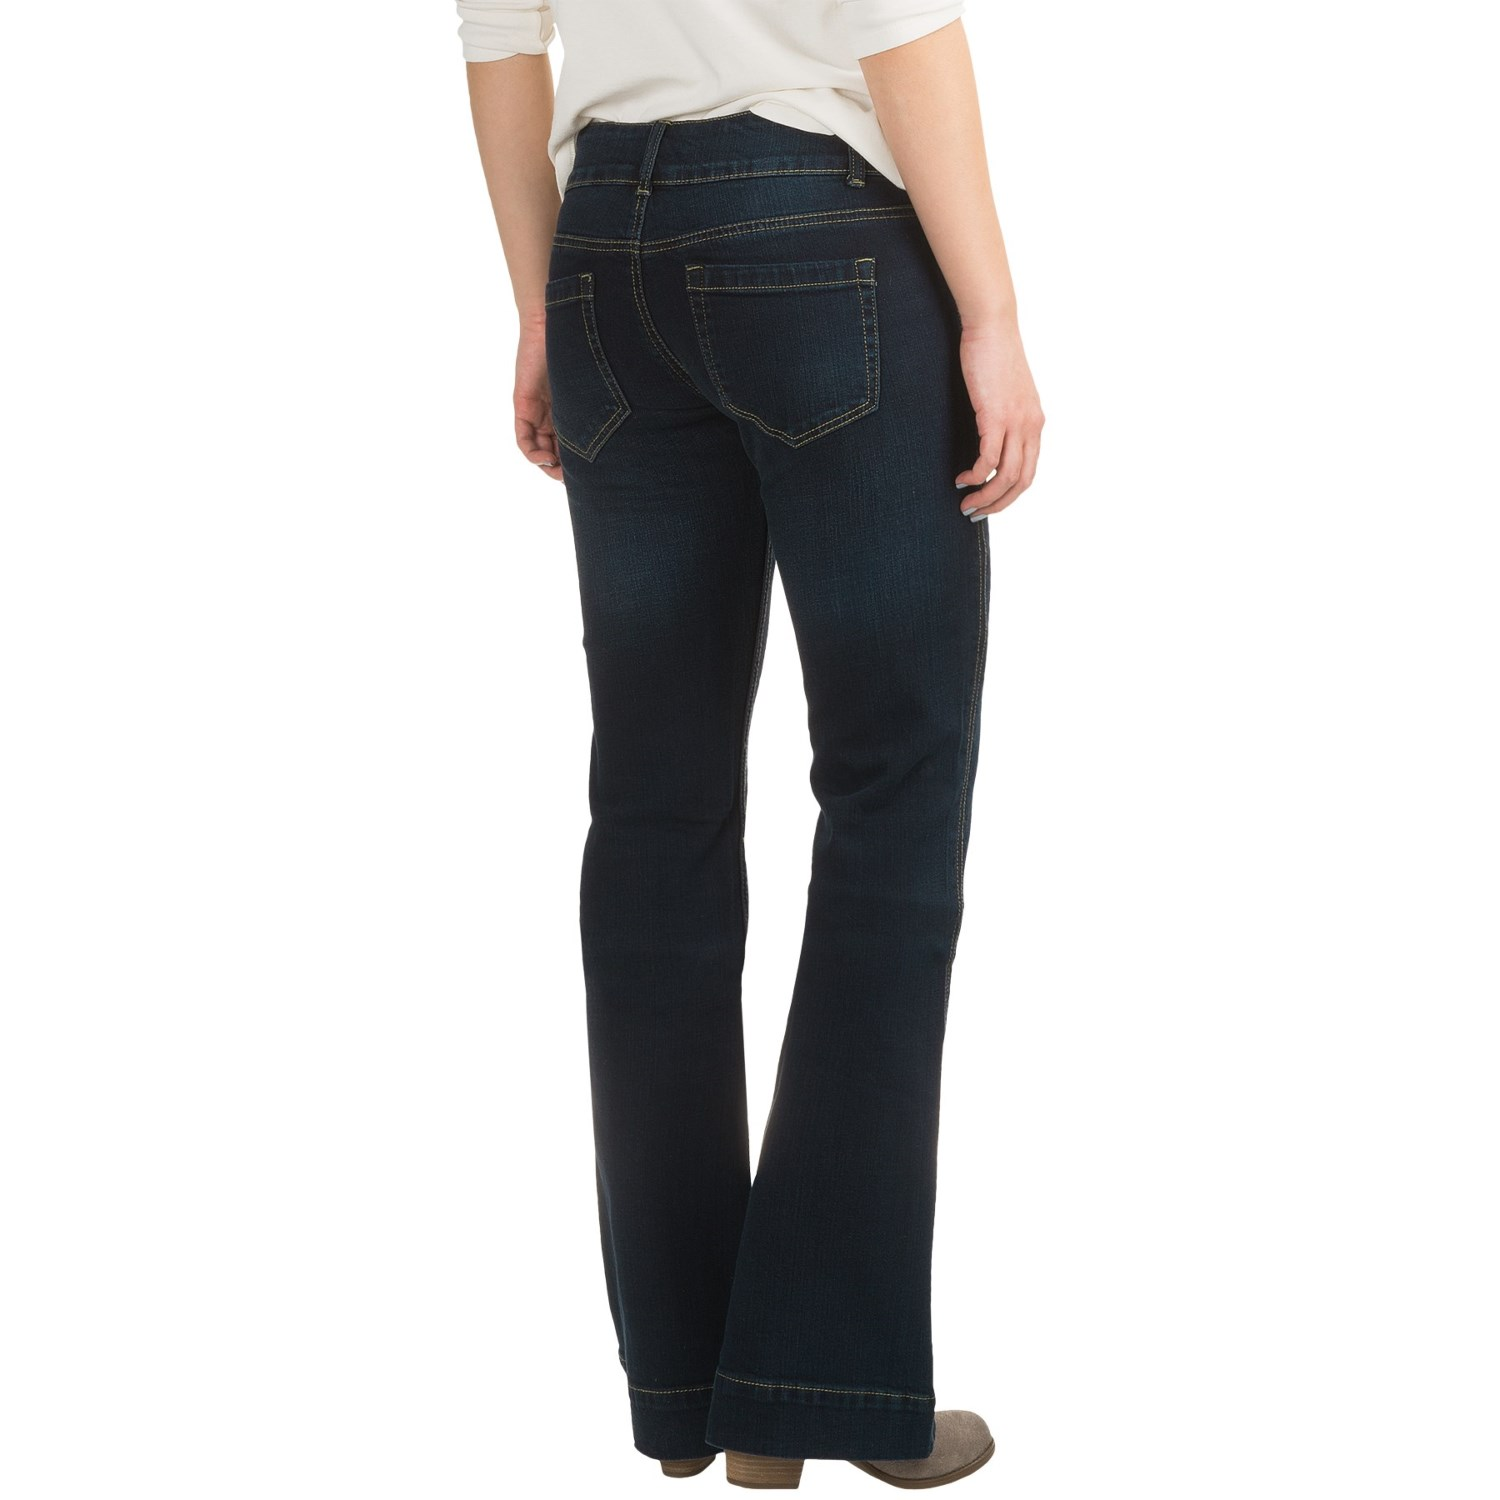 trouser Style Western Jean * Sits Low On The Waist * Moderately Fit Thigh With Slightly Flared Leg * 2 Button Flap Exaggerated Waist Band * Keystone Back Belt Loop * Stetson Branded Buttons, Rivets And Zippers * Blasting Detail * Stetson jeans.